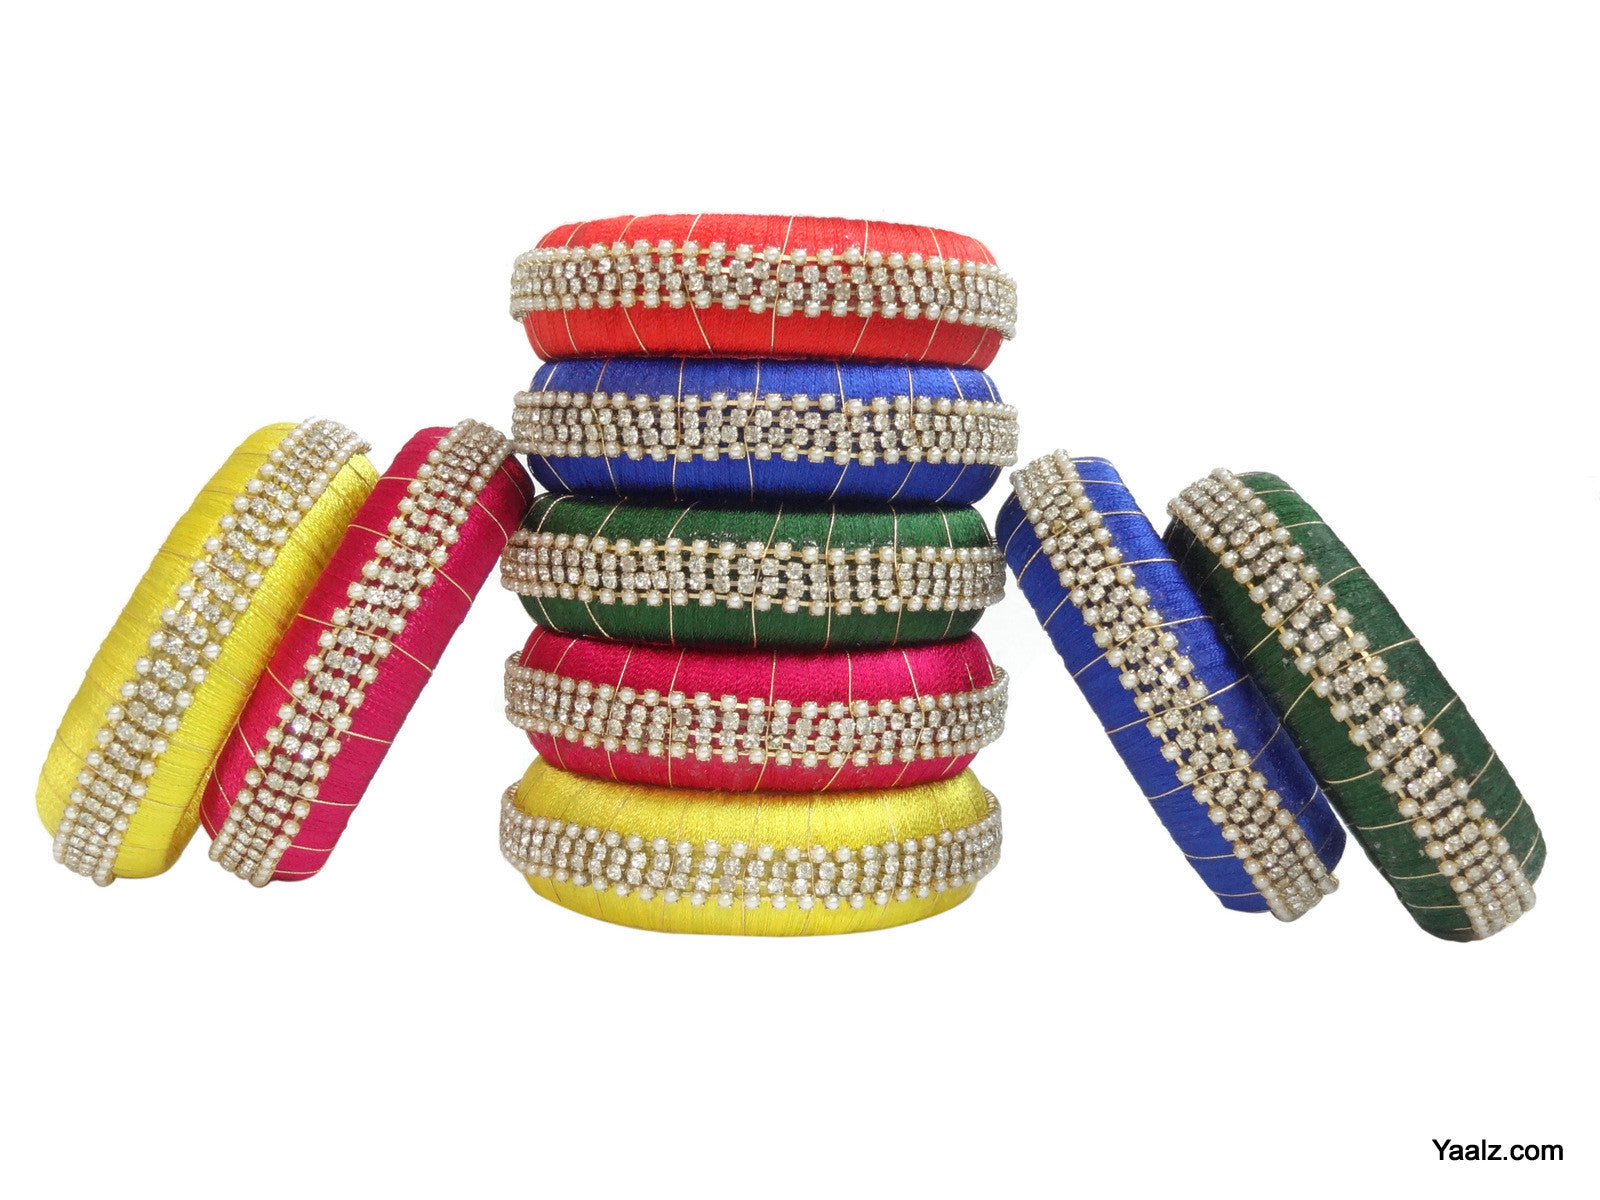 bangles bangle one products novelties cut set diamond dot guarentee on design designer prasad of yr polka light weight polish daily wear